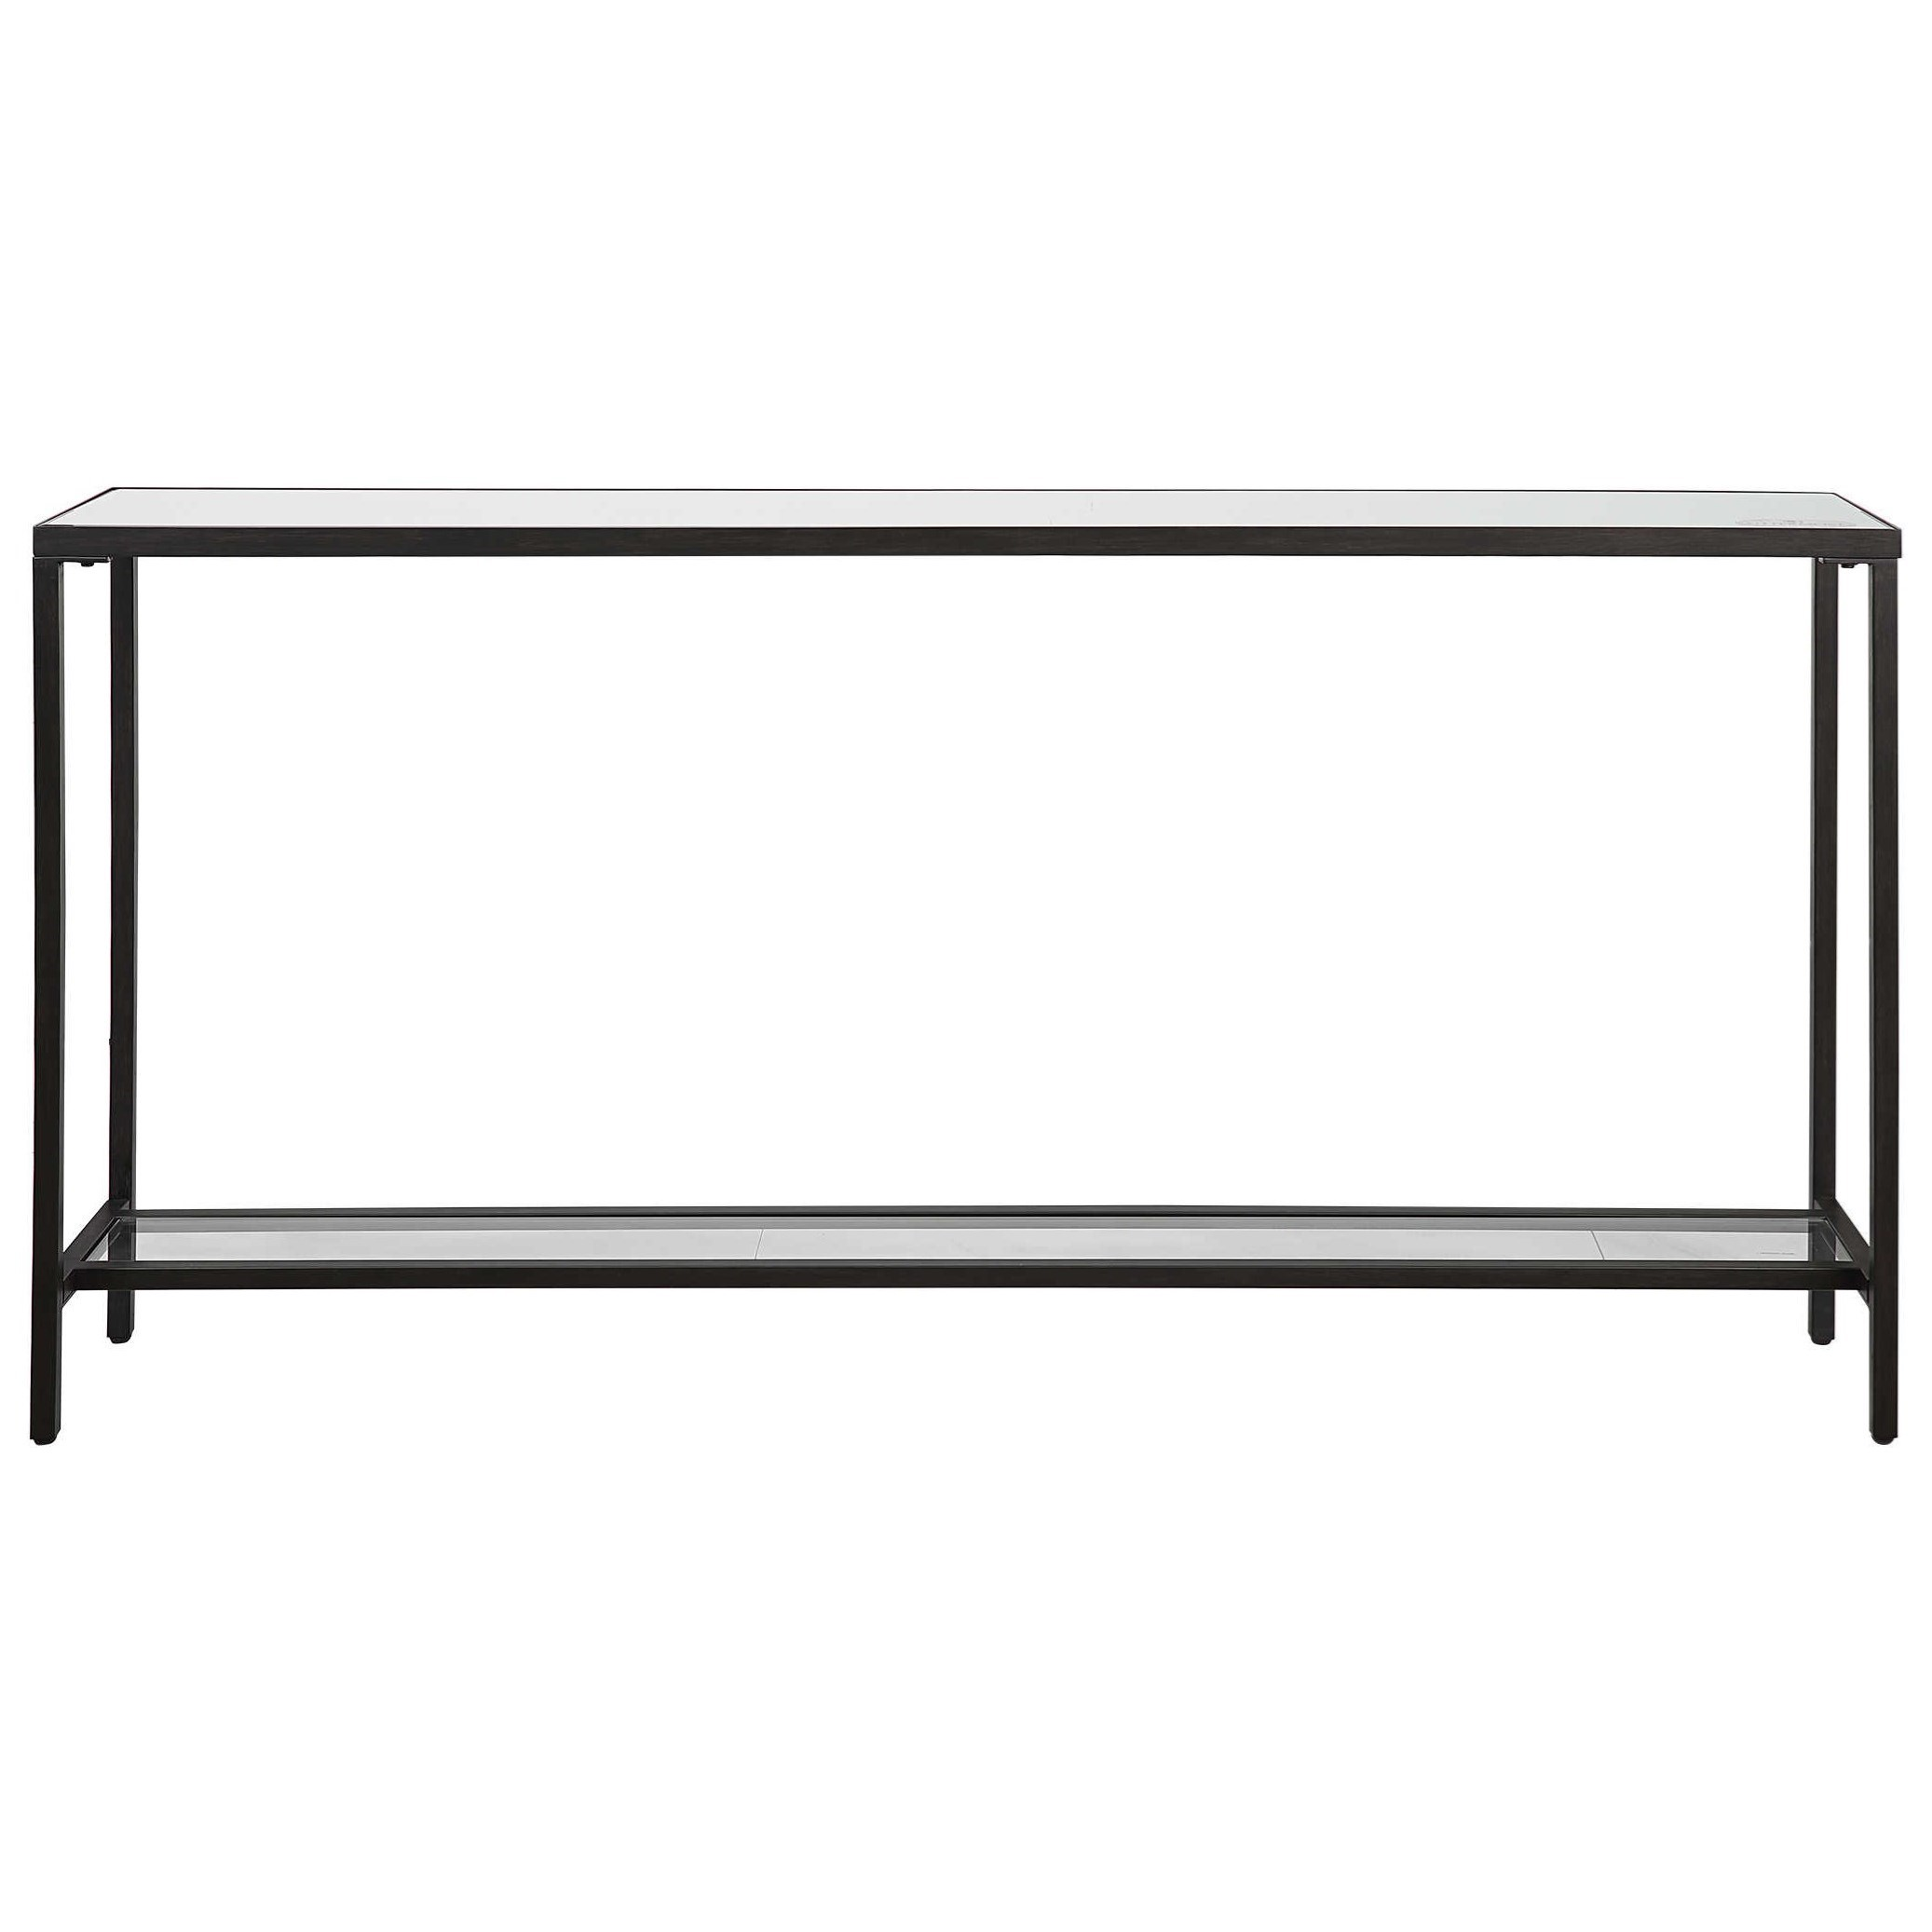 Accent Furniture - Occasional Tables Hayley Black Console Table by Uttermost at Goffena Furniture & Mattress Center